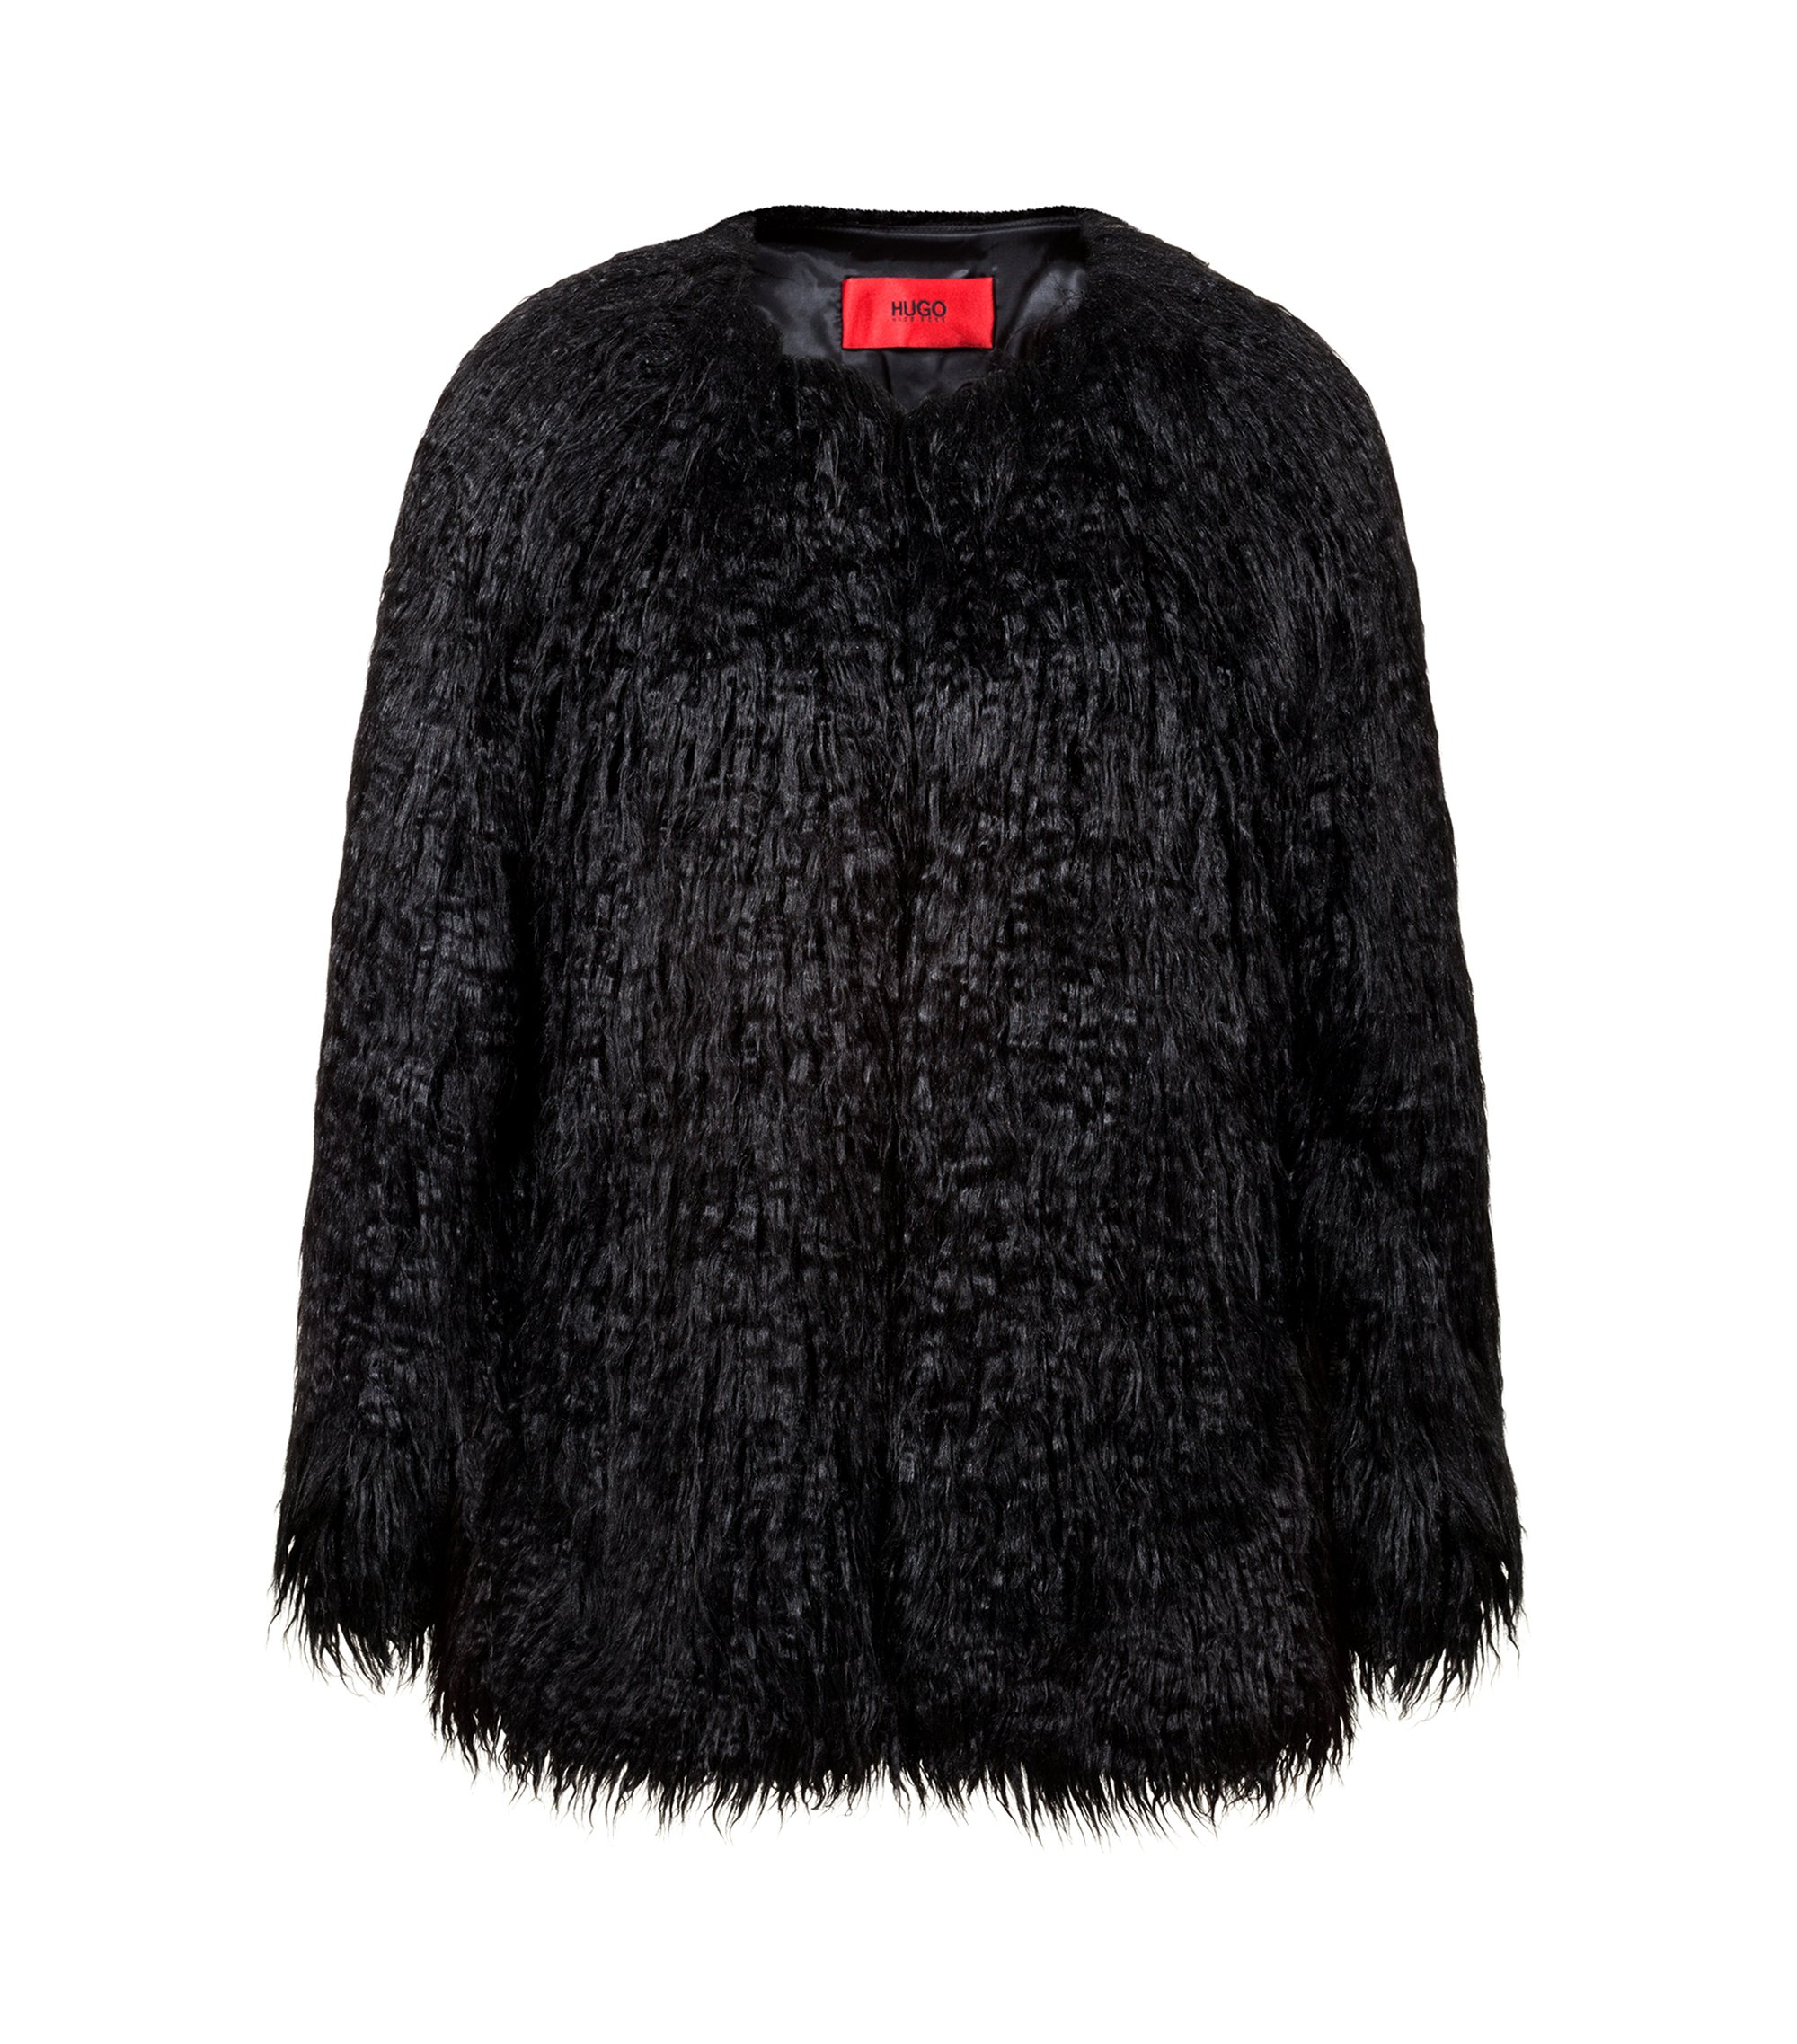 Relaxed-fit jacket in shaggy faux fur, Black